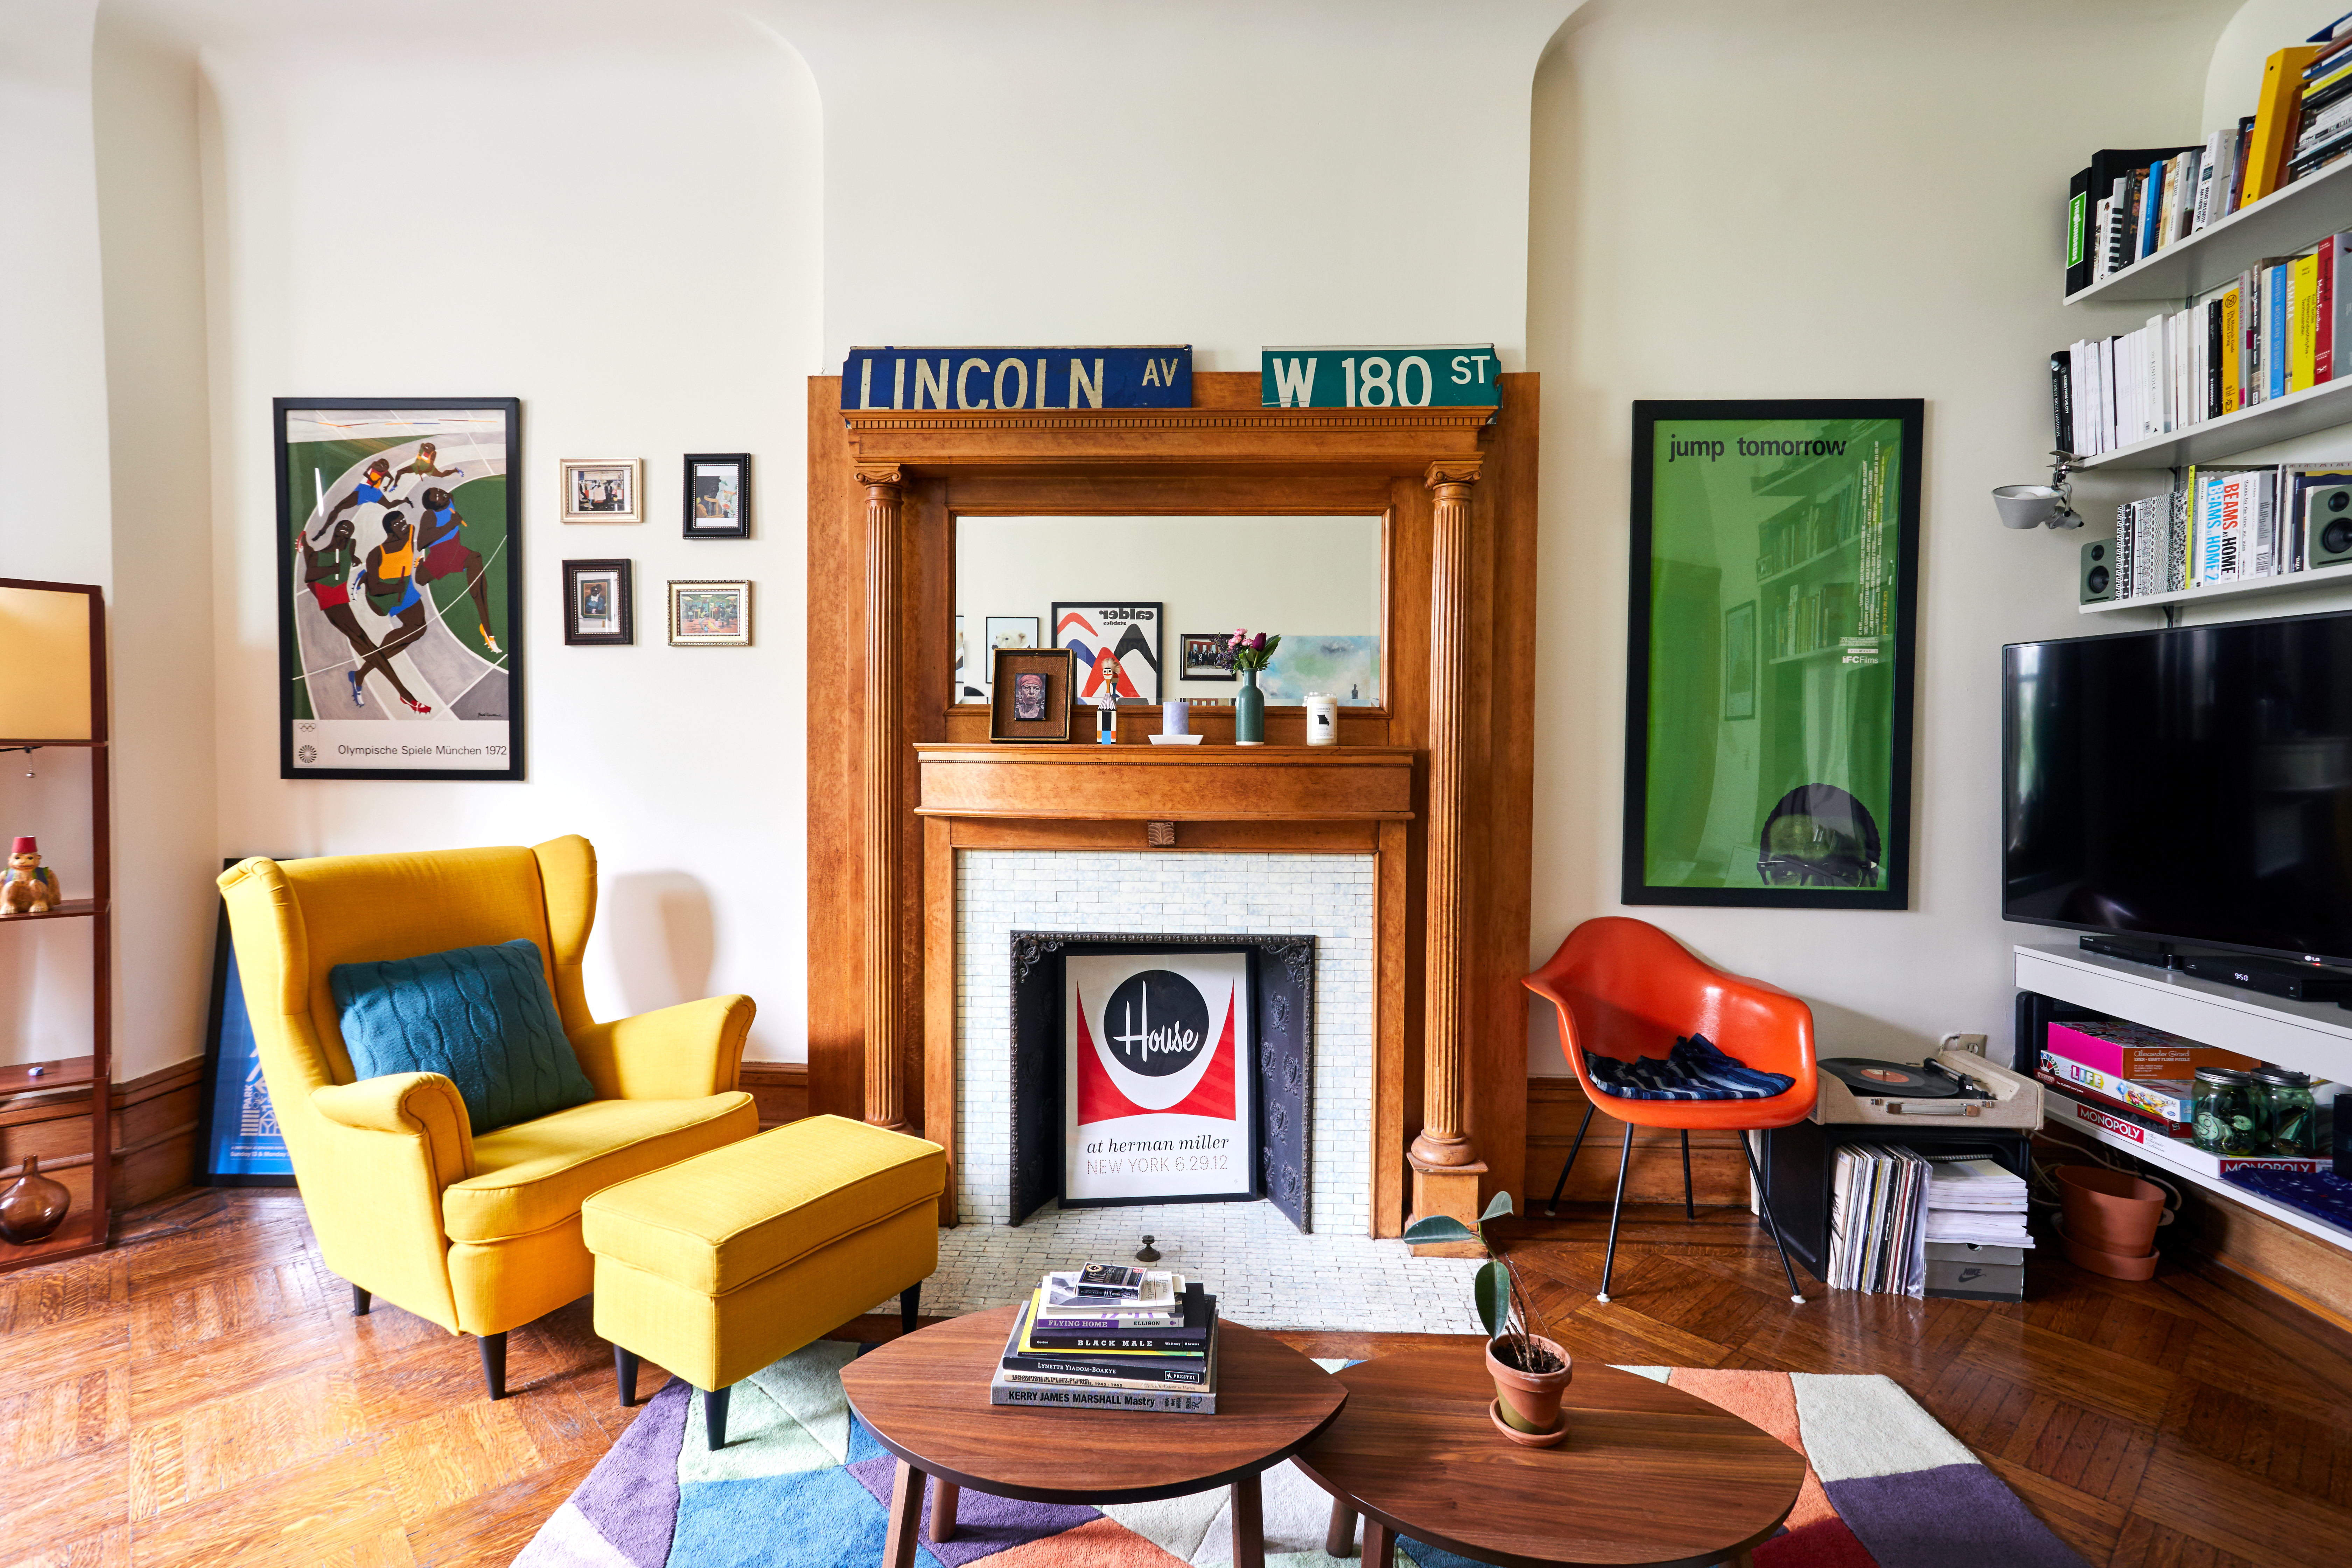 The living area of a New York City apartment with a fireplace at the center, a yellow lounge chair with footrest to the left, and a red accent chair and television to the right. Bold bright artworks hang around the walls.